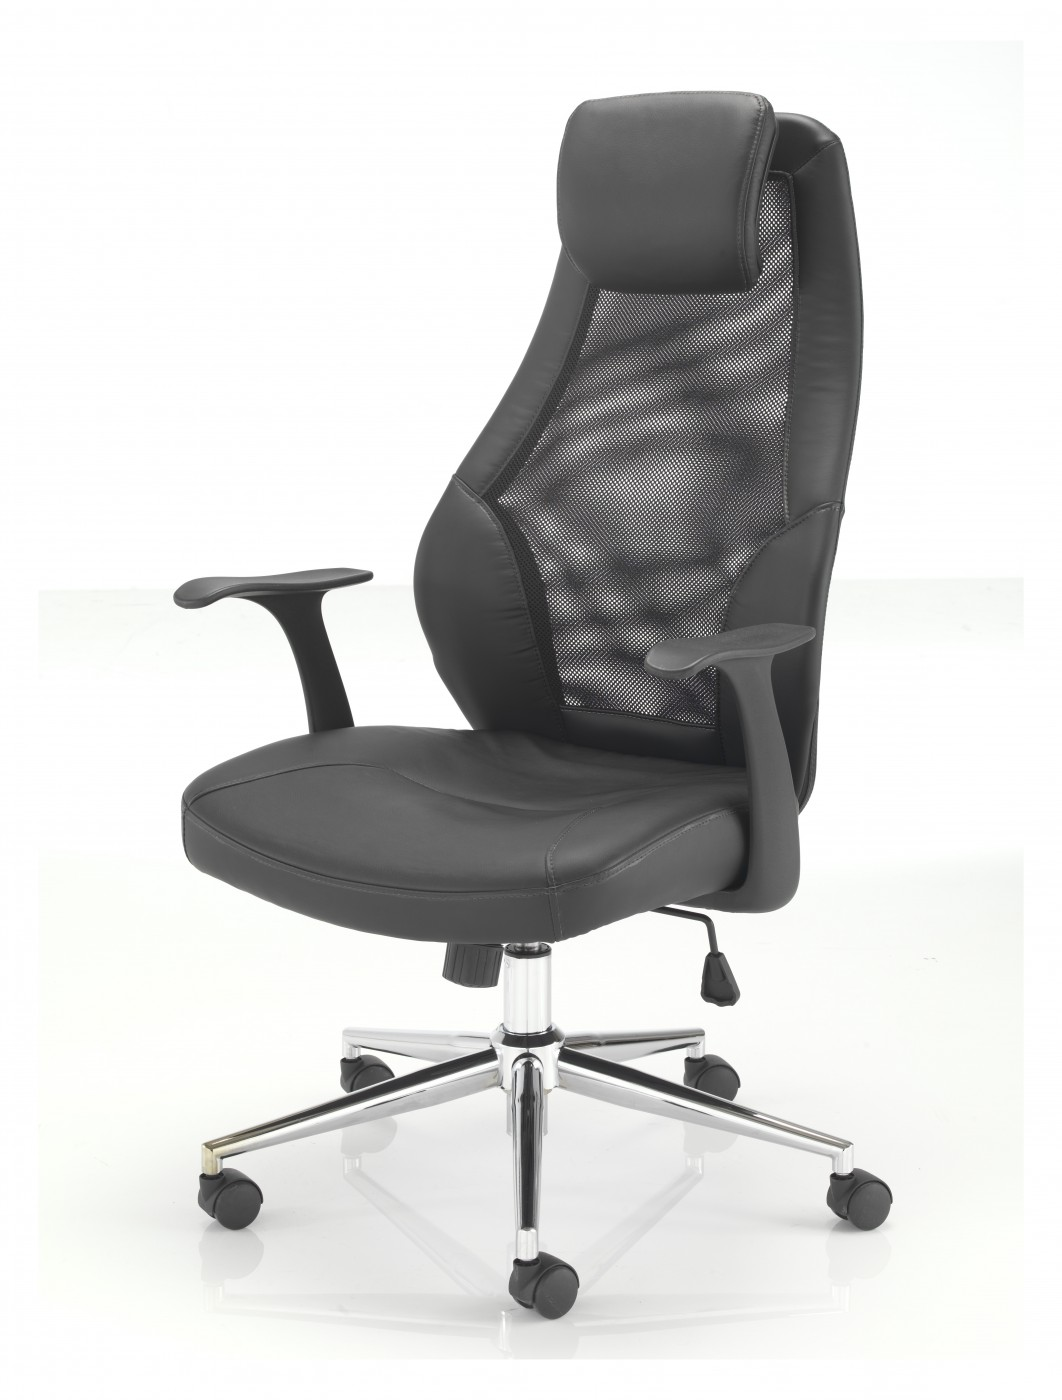 executive mesh office chair best chairs bilana review tc ch2403bk 121 furniture